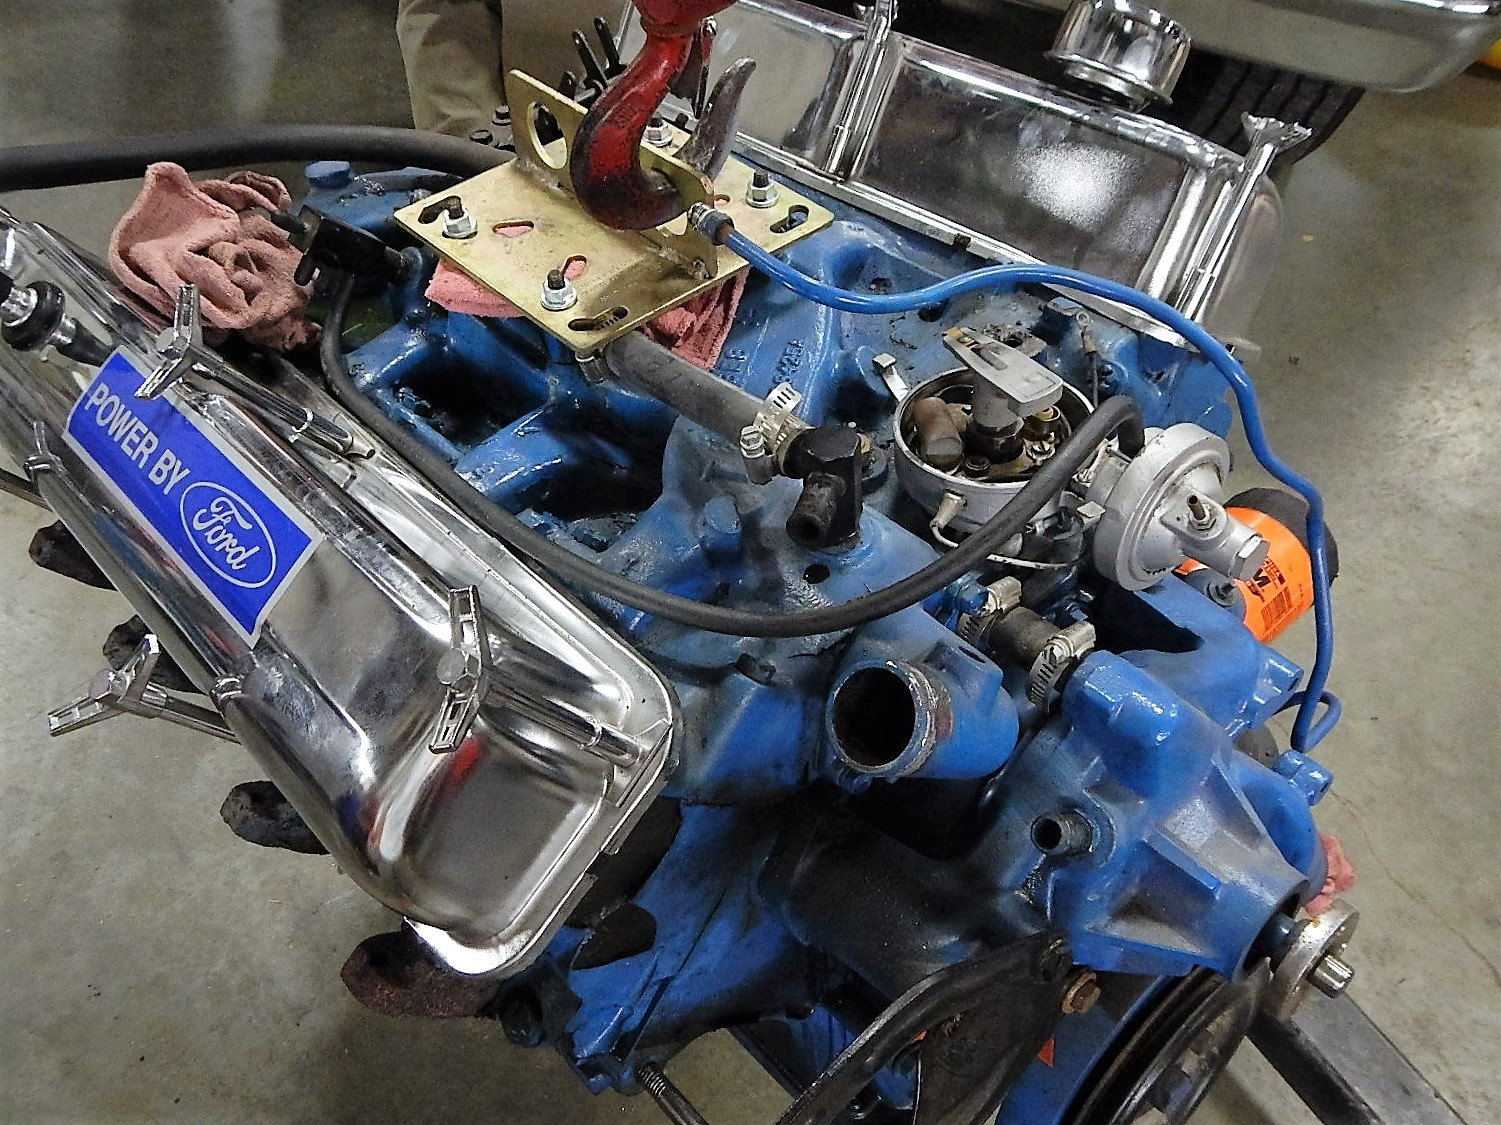 1968 Ford F-100 Front End Swap - Mercury Crown Vic  017.jpg